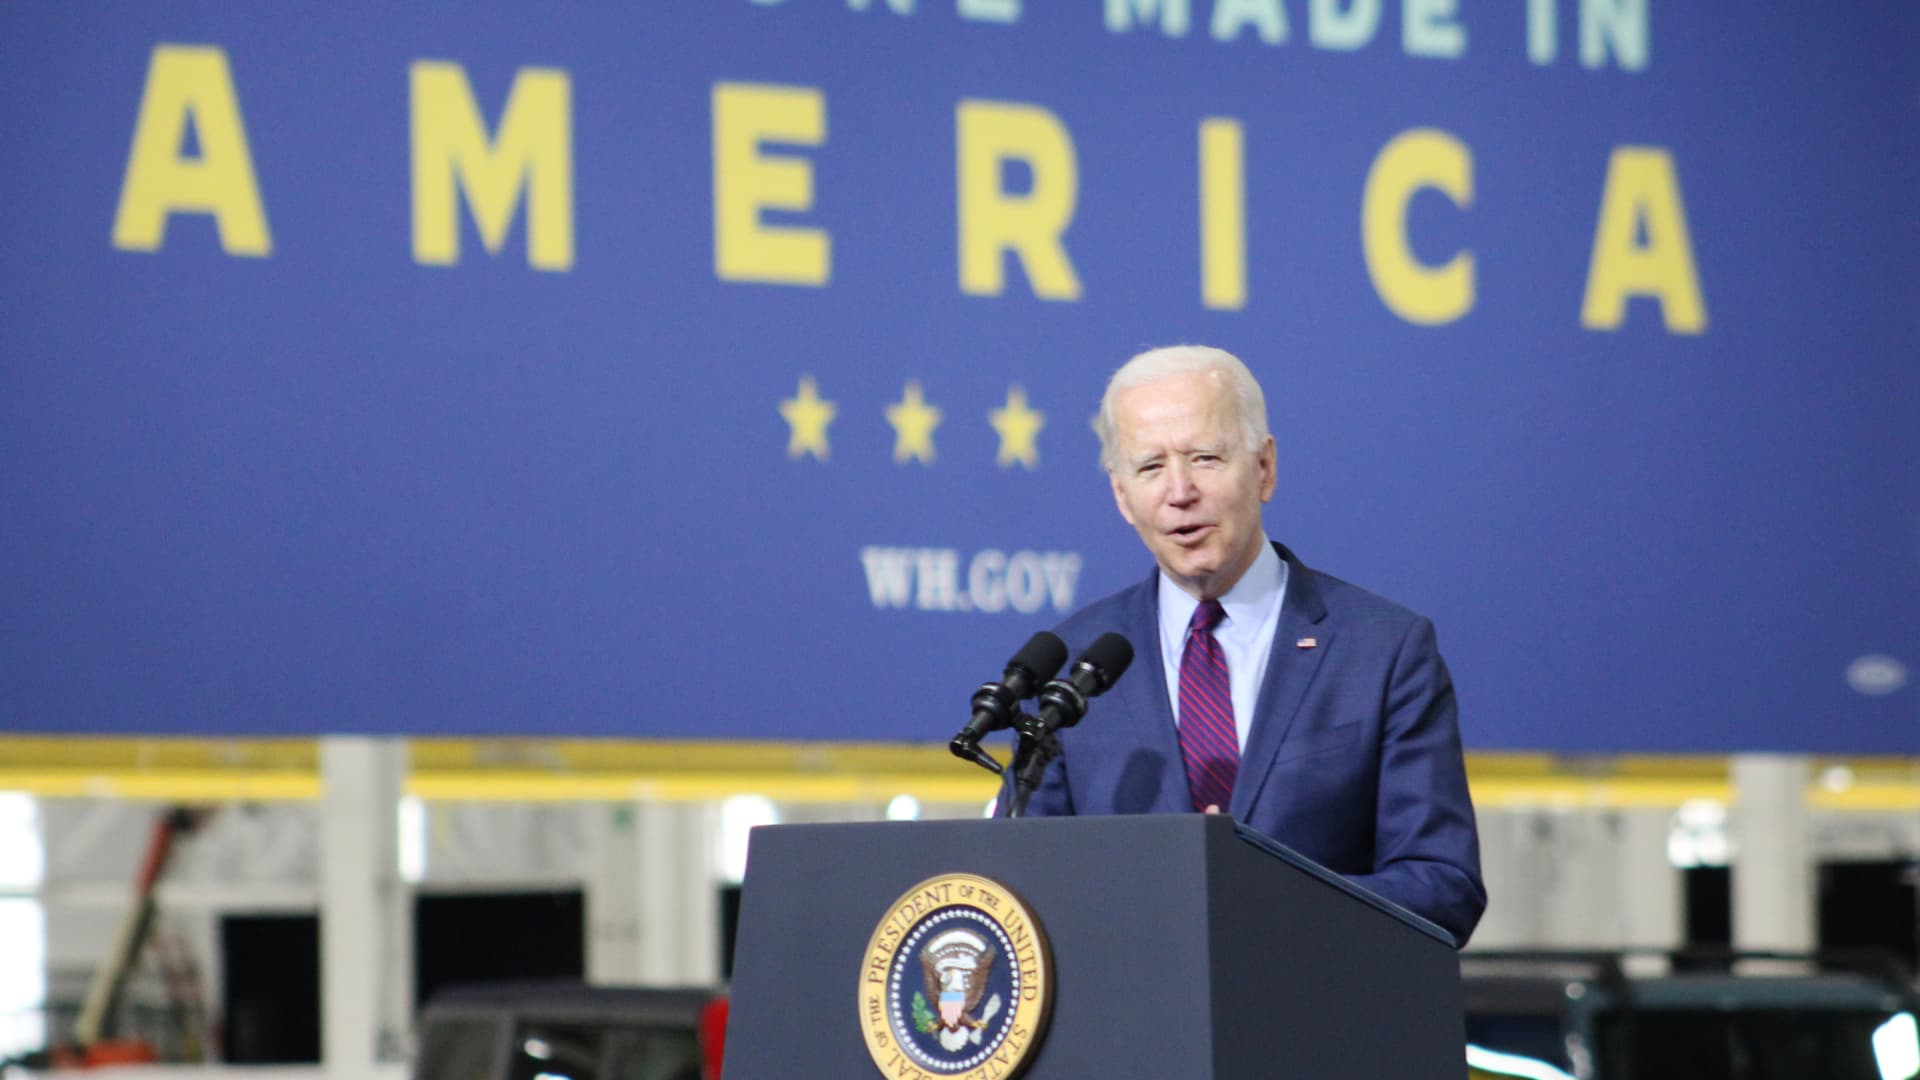 President Joe Biden speaks during a tour of the Ford Rouge Electric Vehicle Center, in Dearborn, Michigan on May 18, 2021.